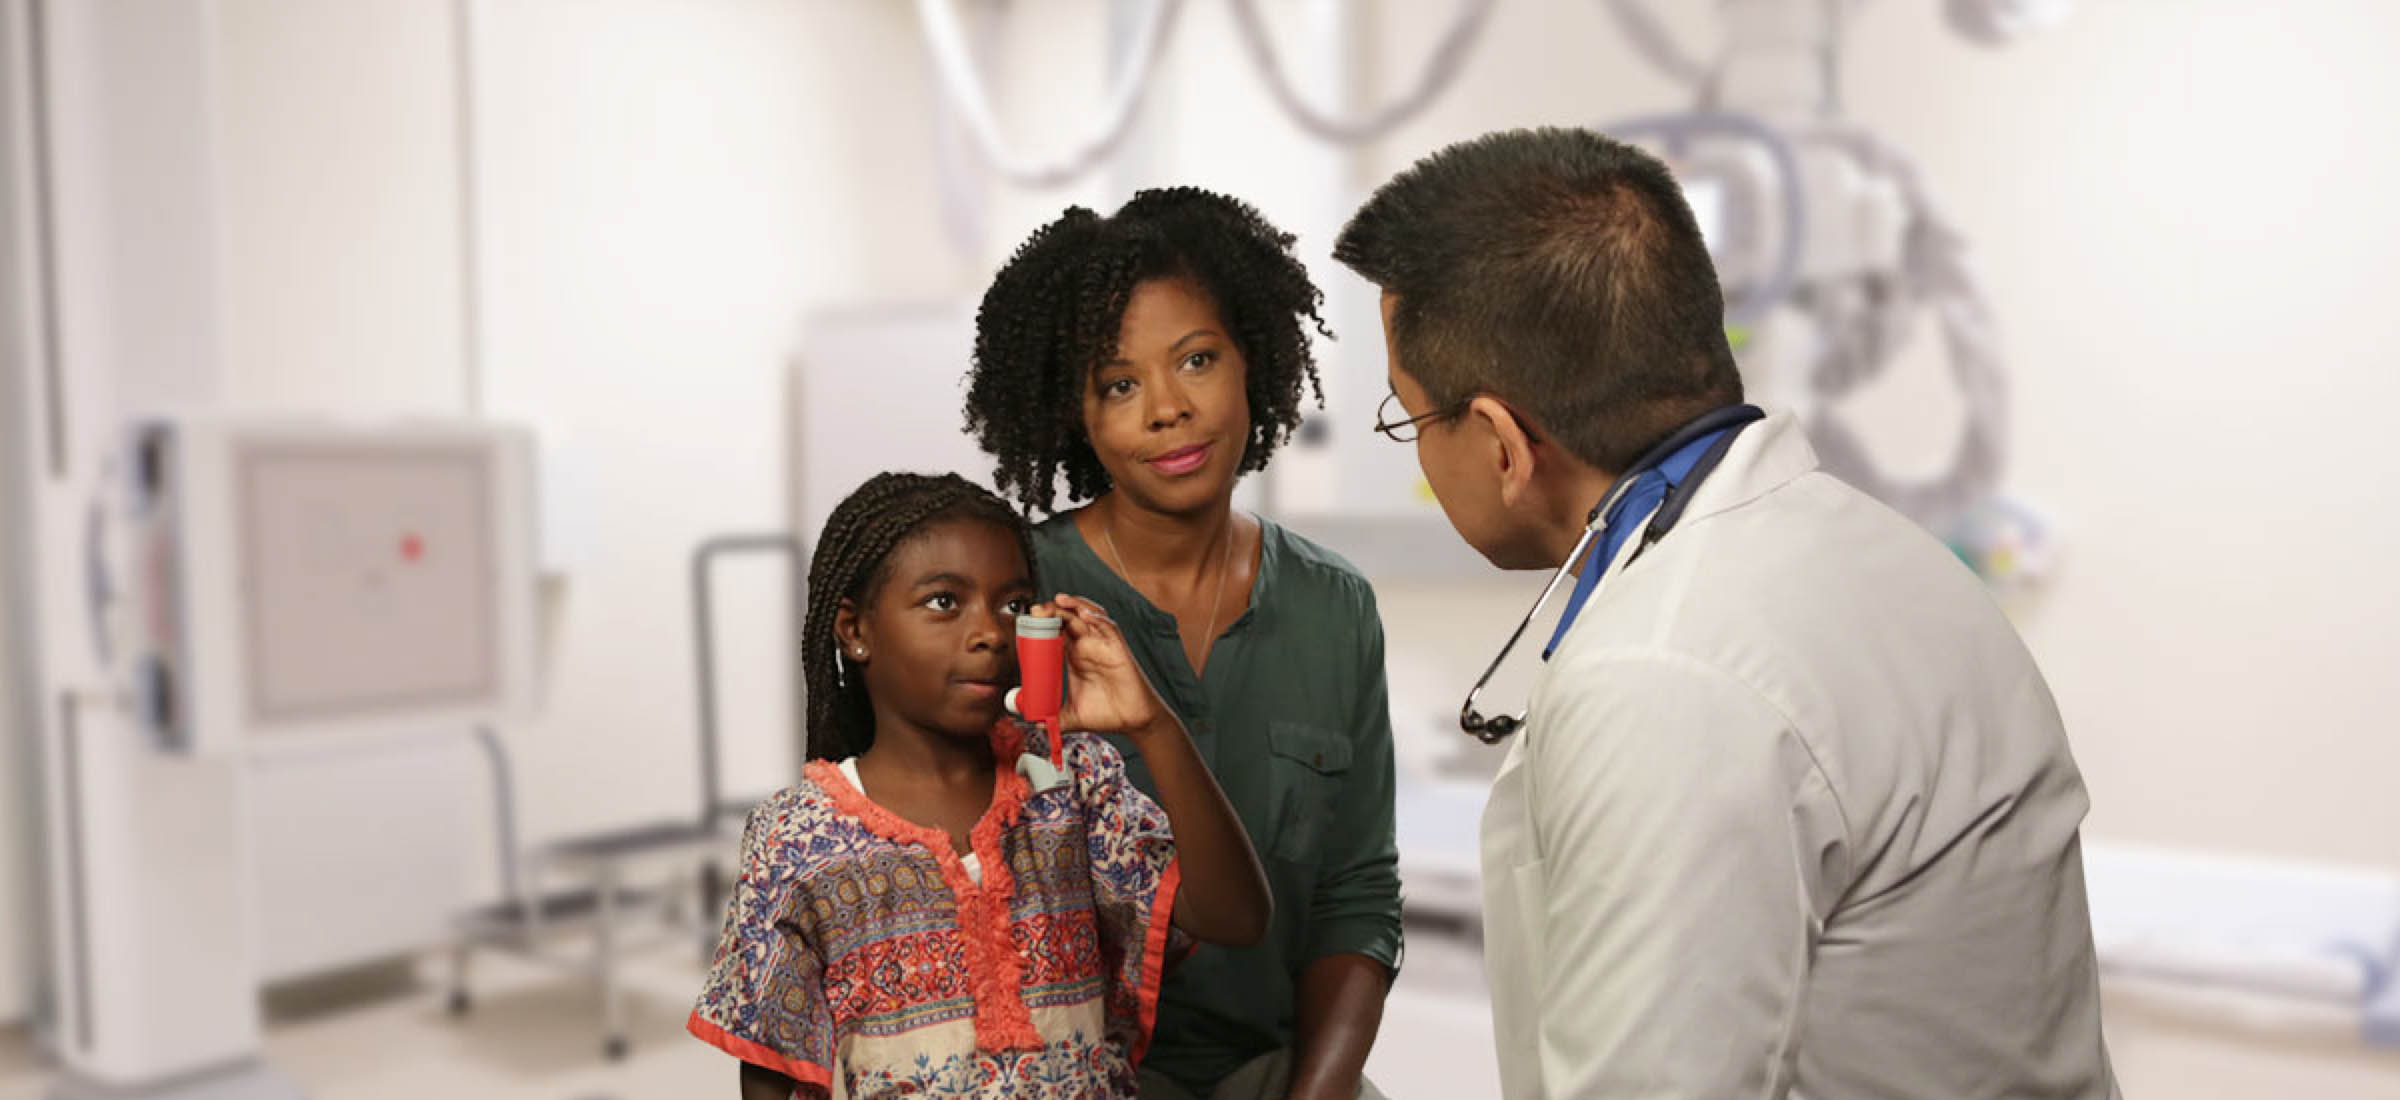 African American child with Asthma talking to a doctor